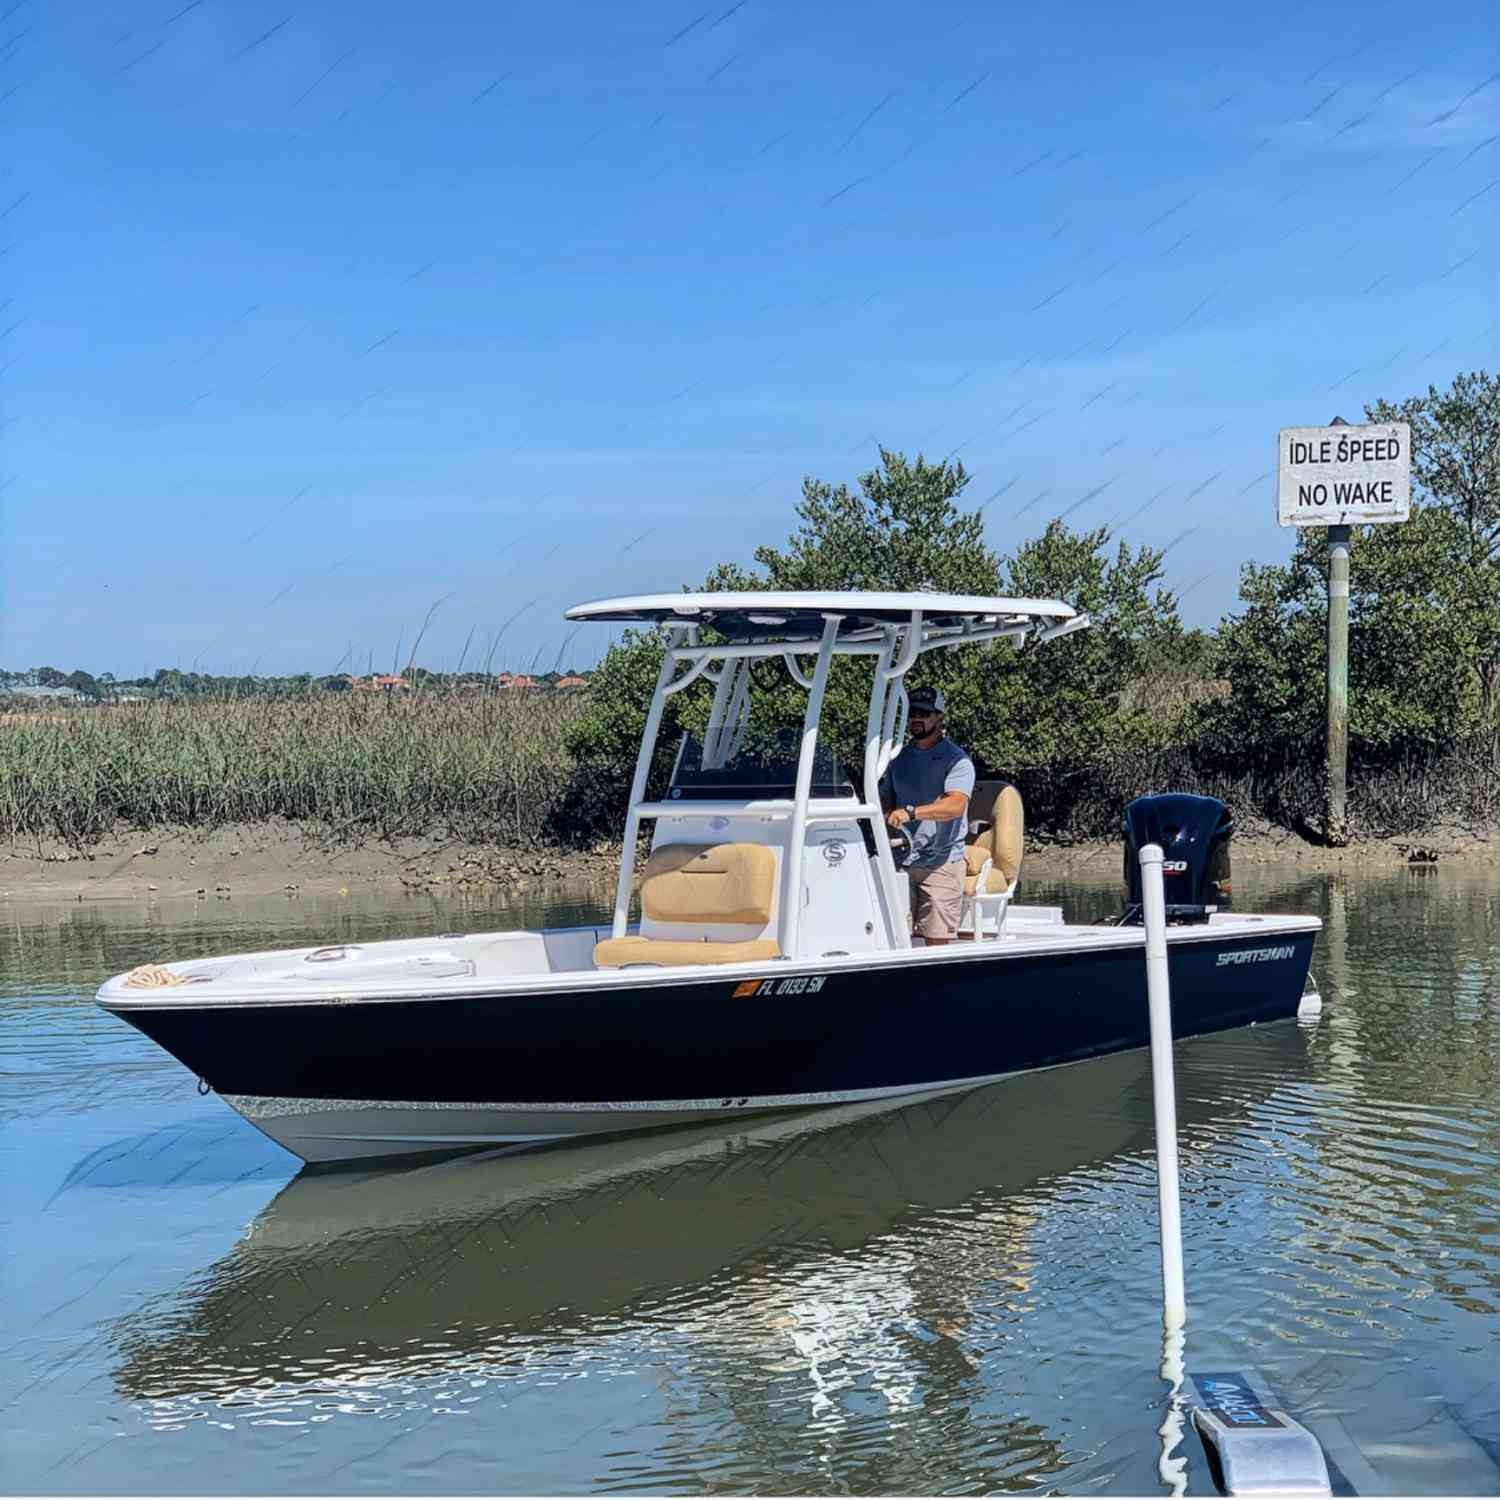 Title: No speed limit posted - On board their Sportsman Masters 247 Bay Boat - Location: St Augustine, Florida. Participating in the Photo Contest #SportsmanMay2020